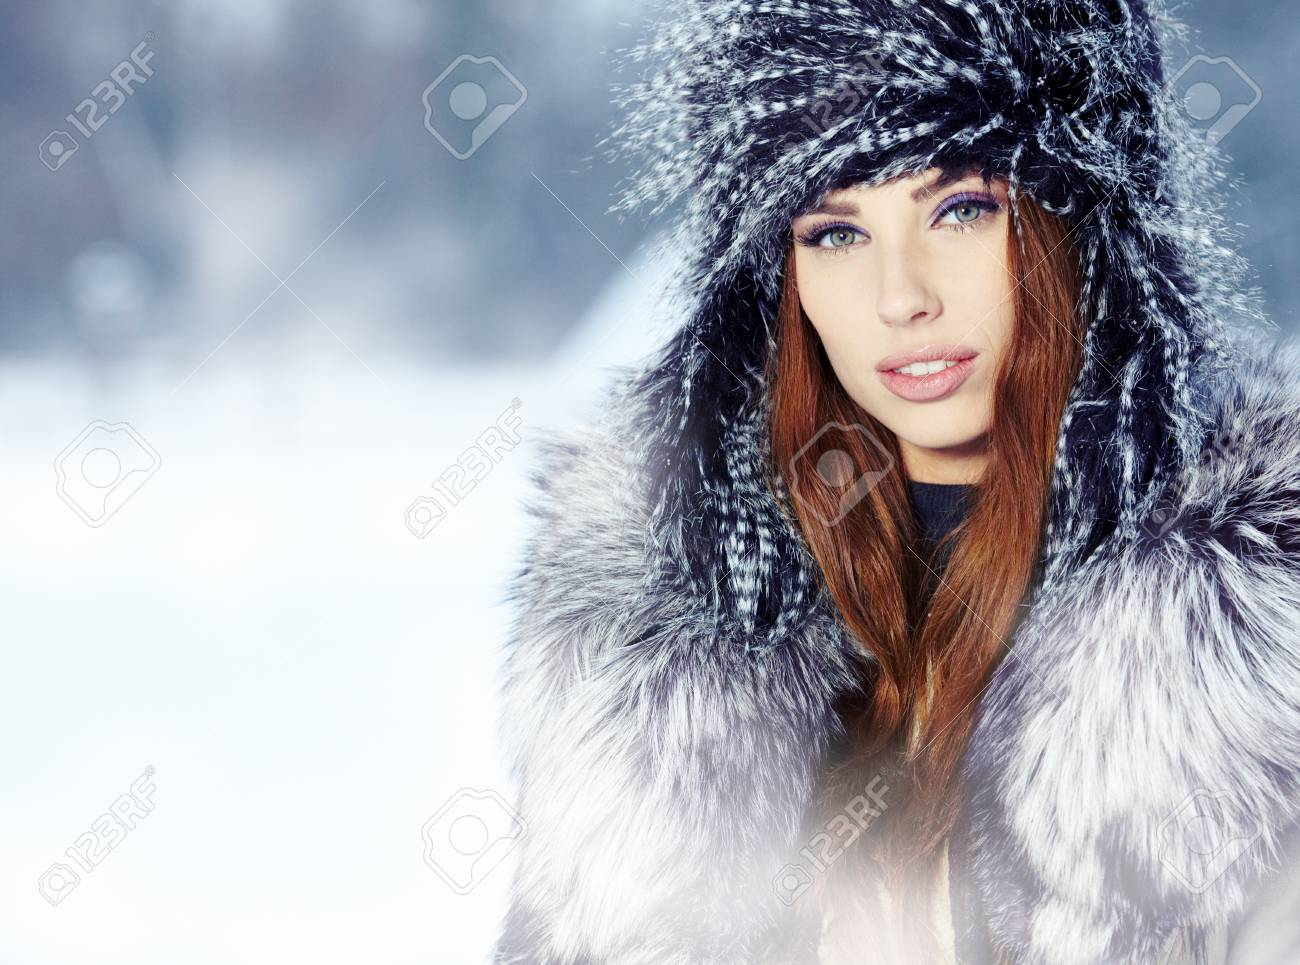 a beauty girl on the winter background Stock Photo - 17130056